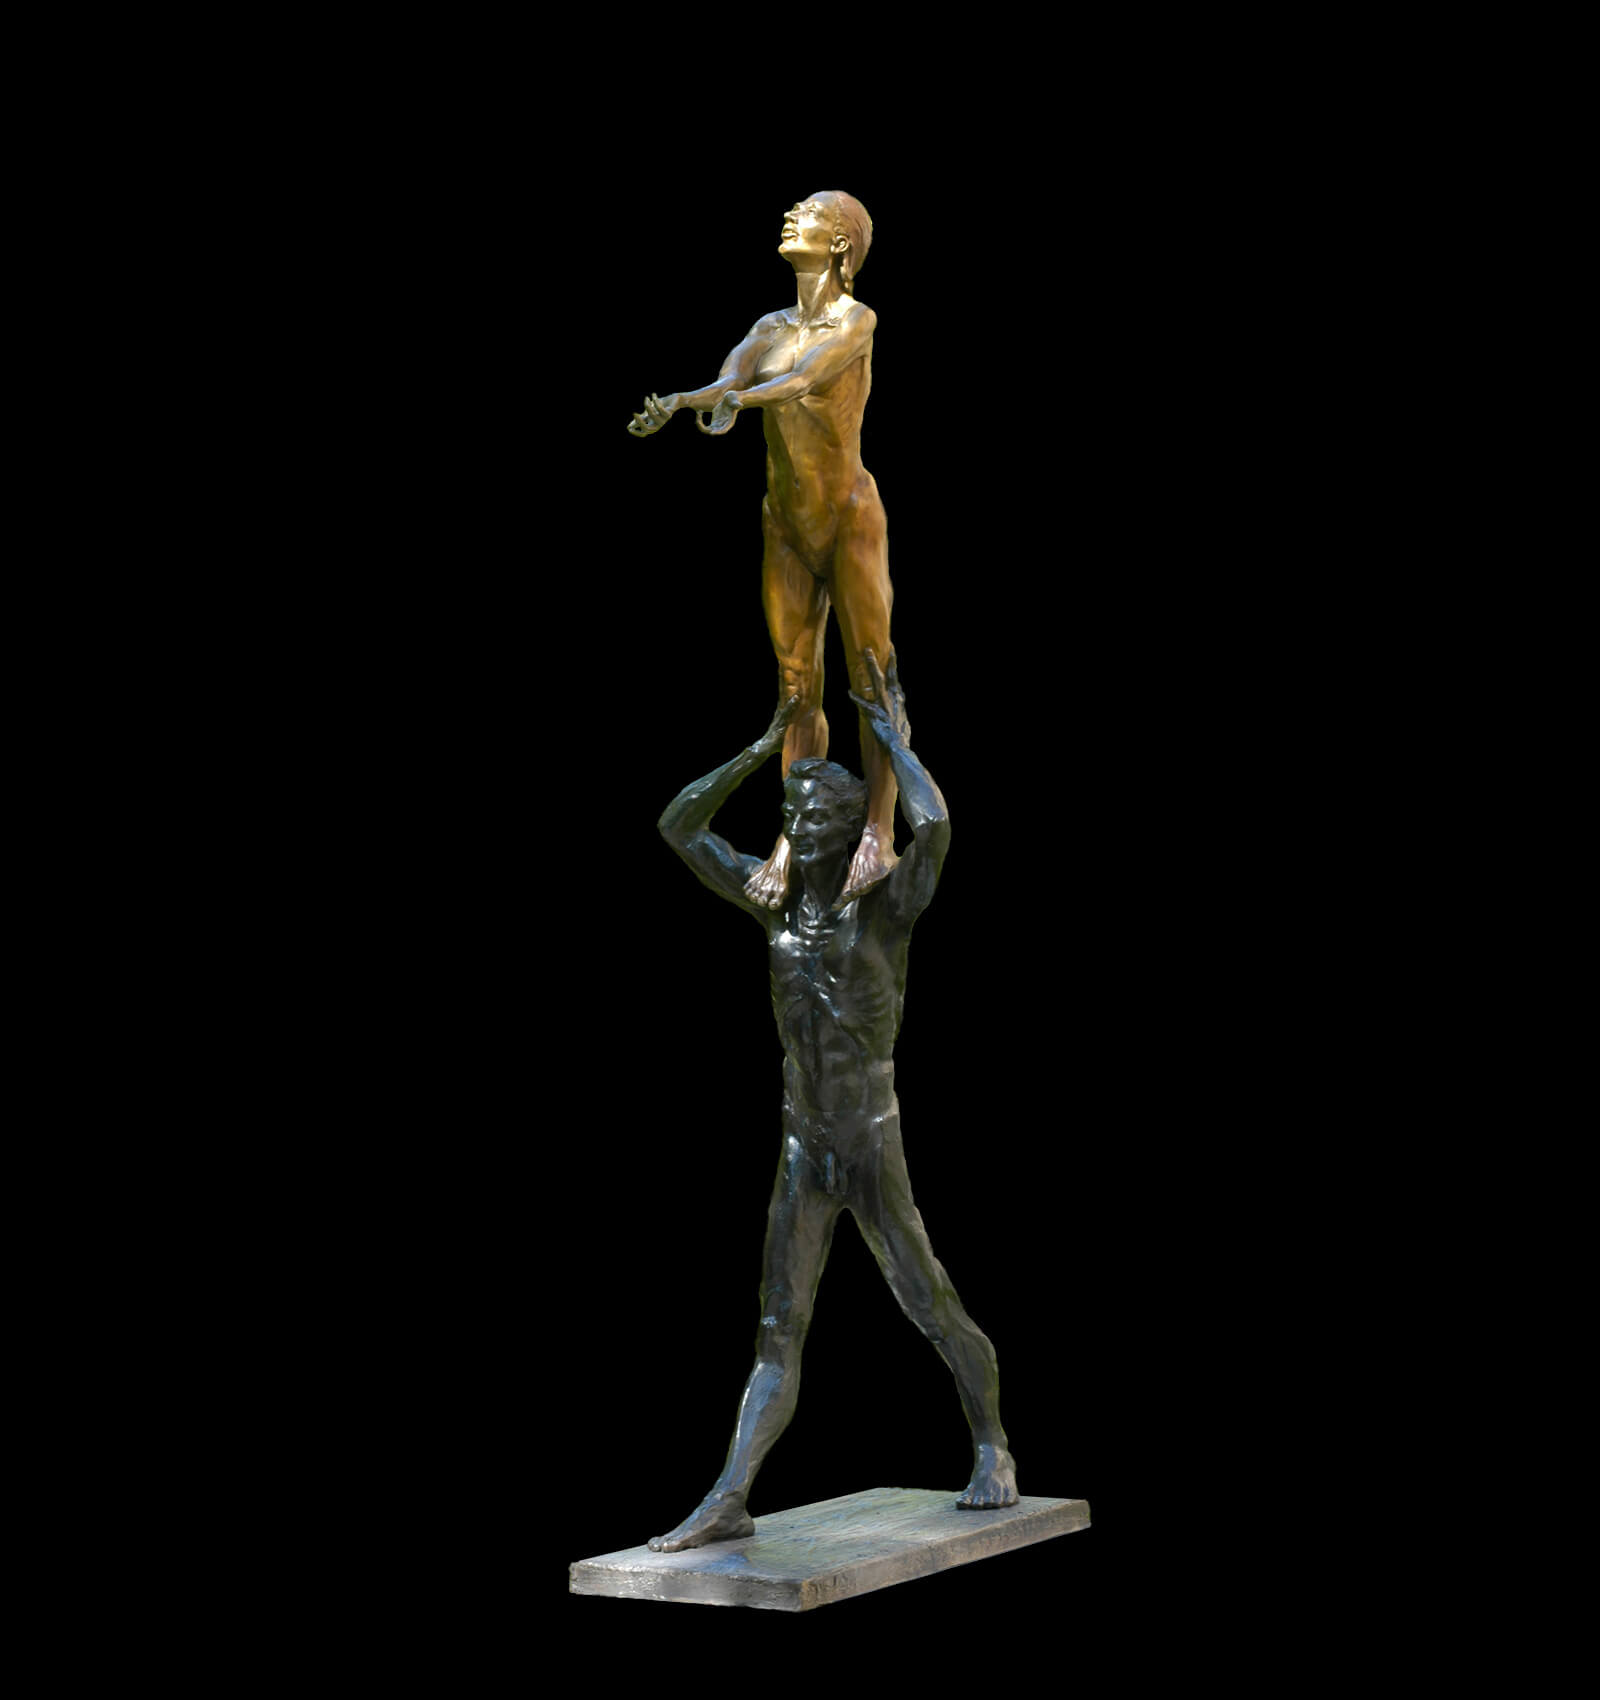 The Seed half life size figurative bronze sculpture by Andrew DeVries